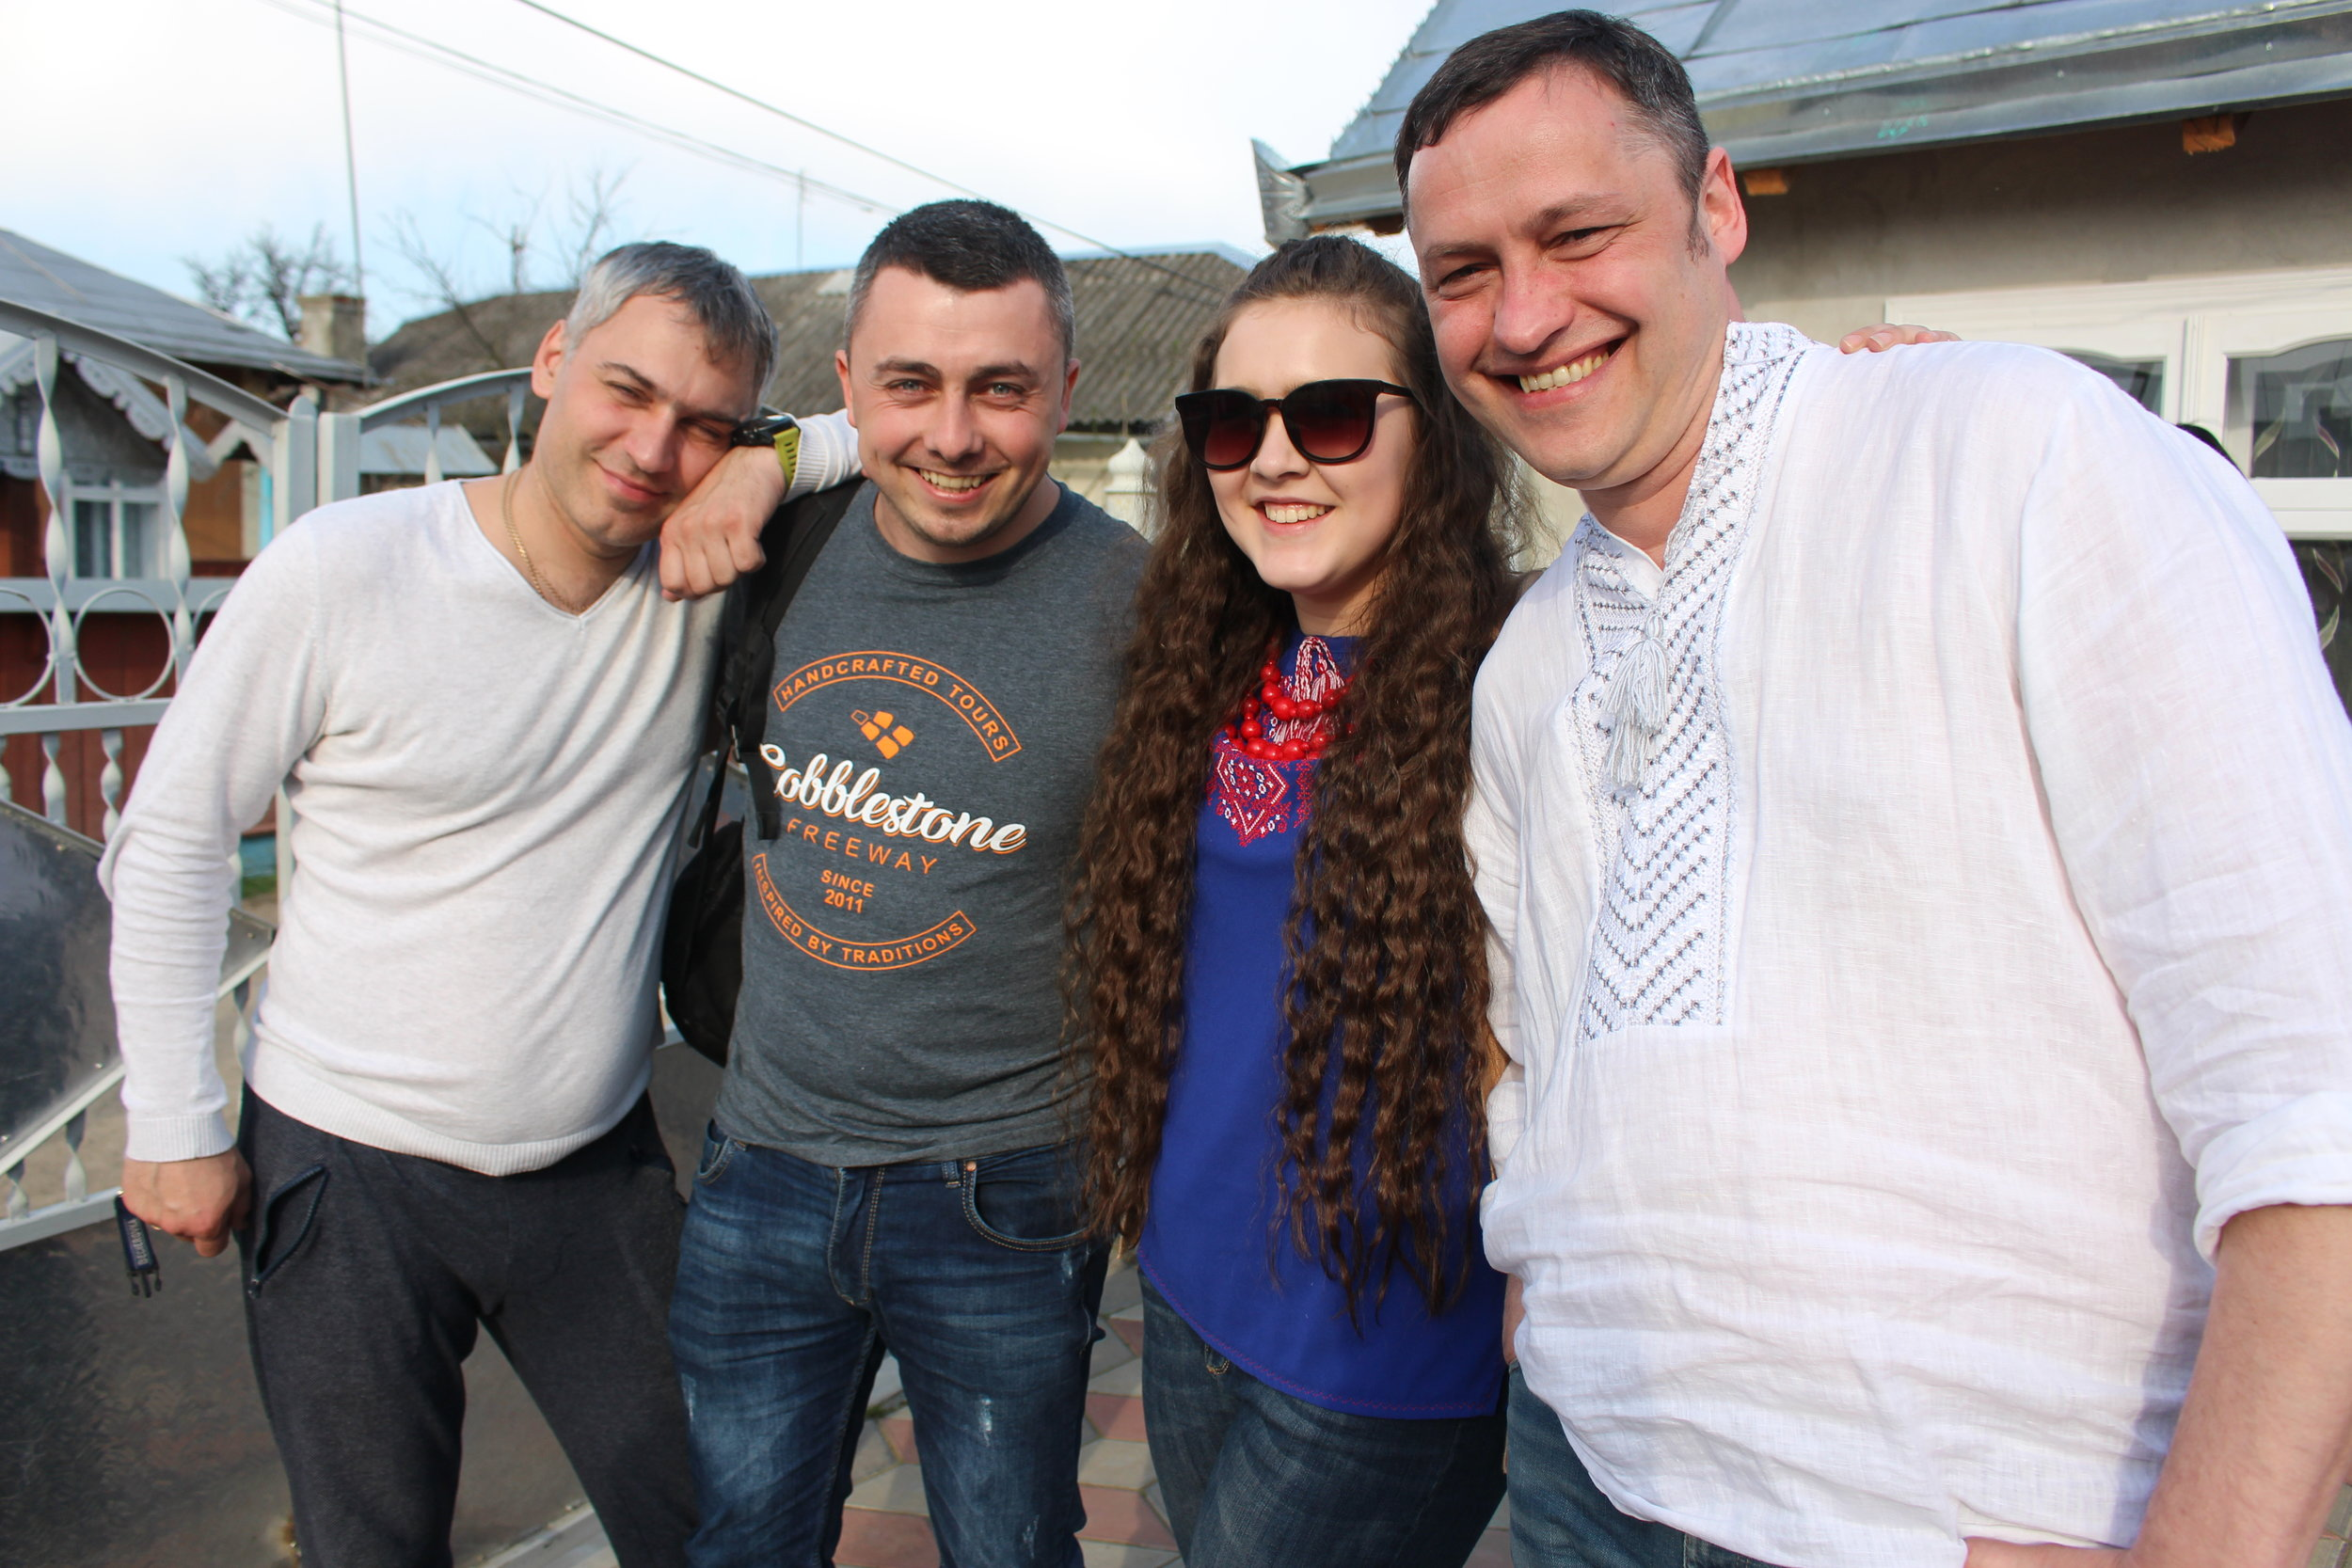 Our driver, the Cobblestone crew, and Natalya were all smiles after the meal we just ate.